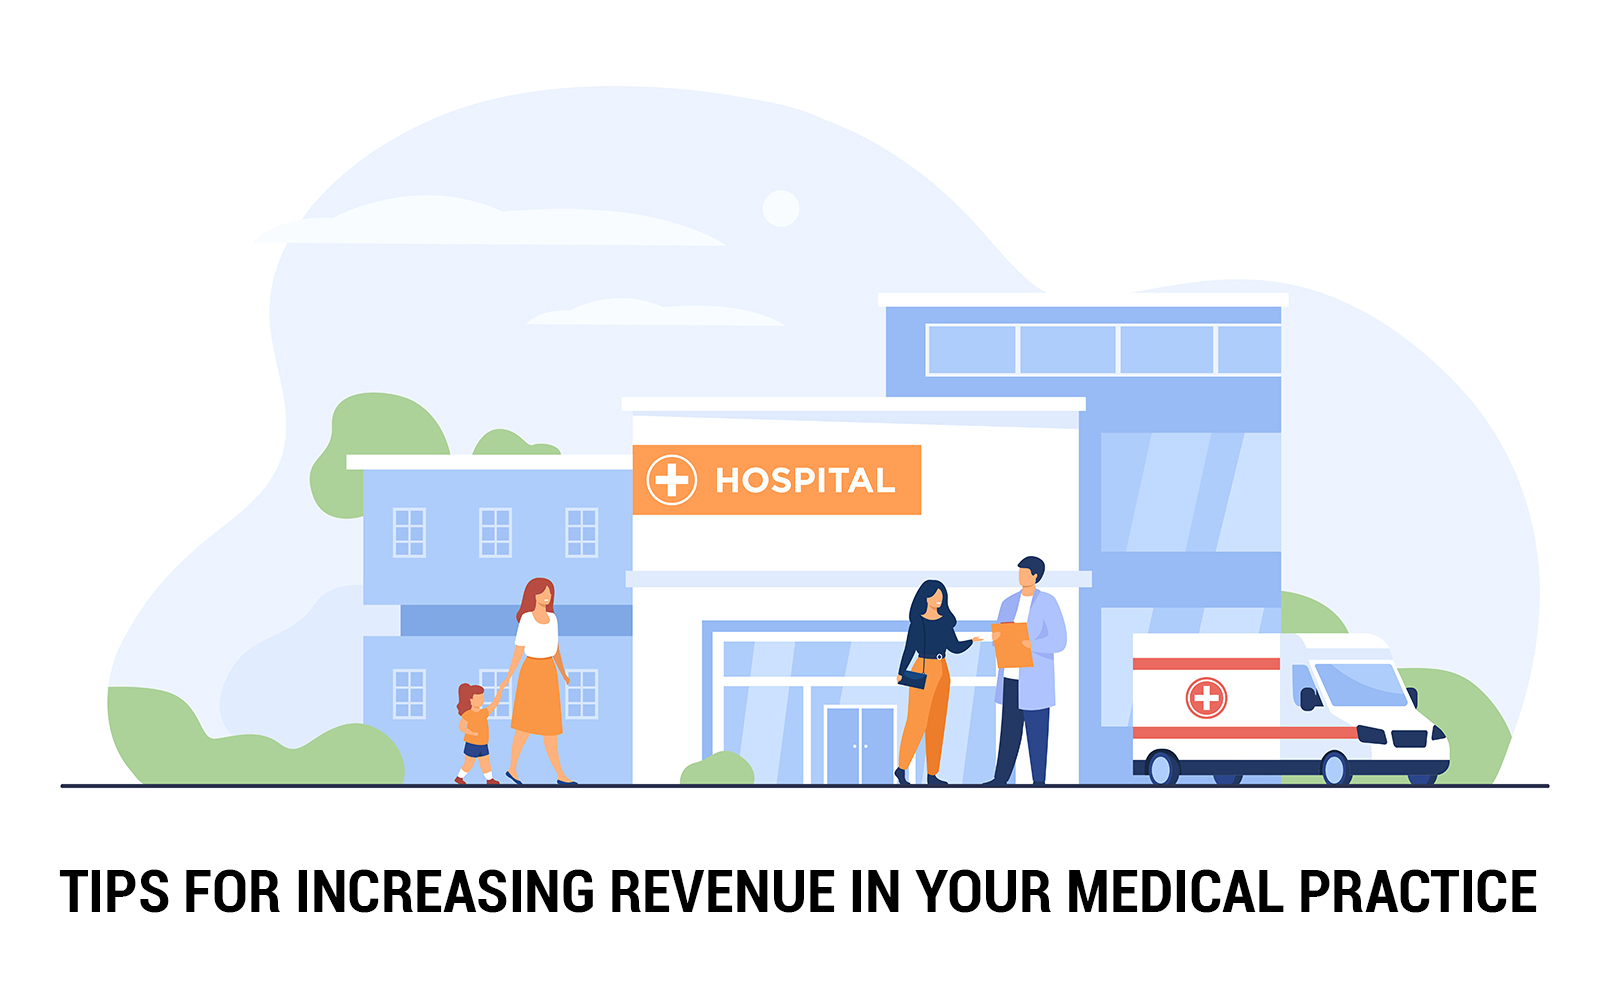 Tips for Increasing Revenue in Your Medical Practice